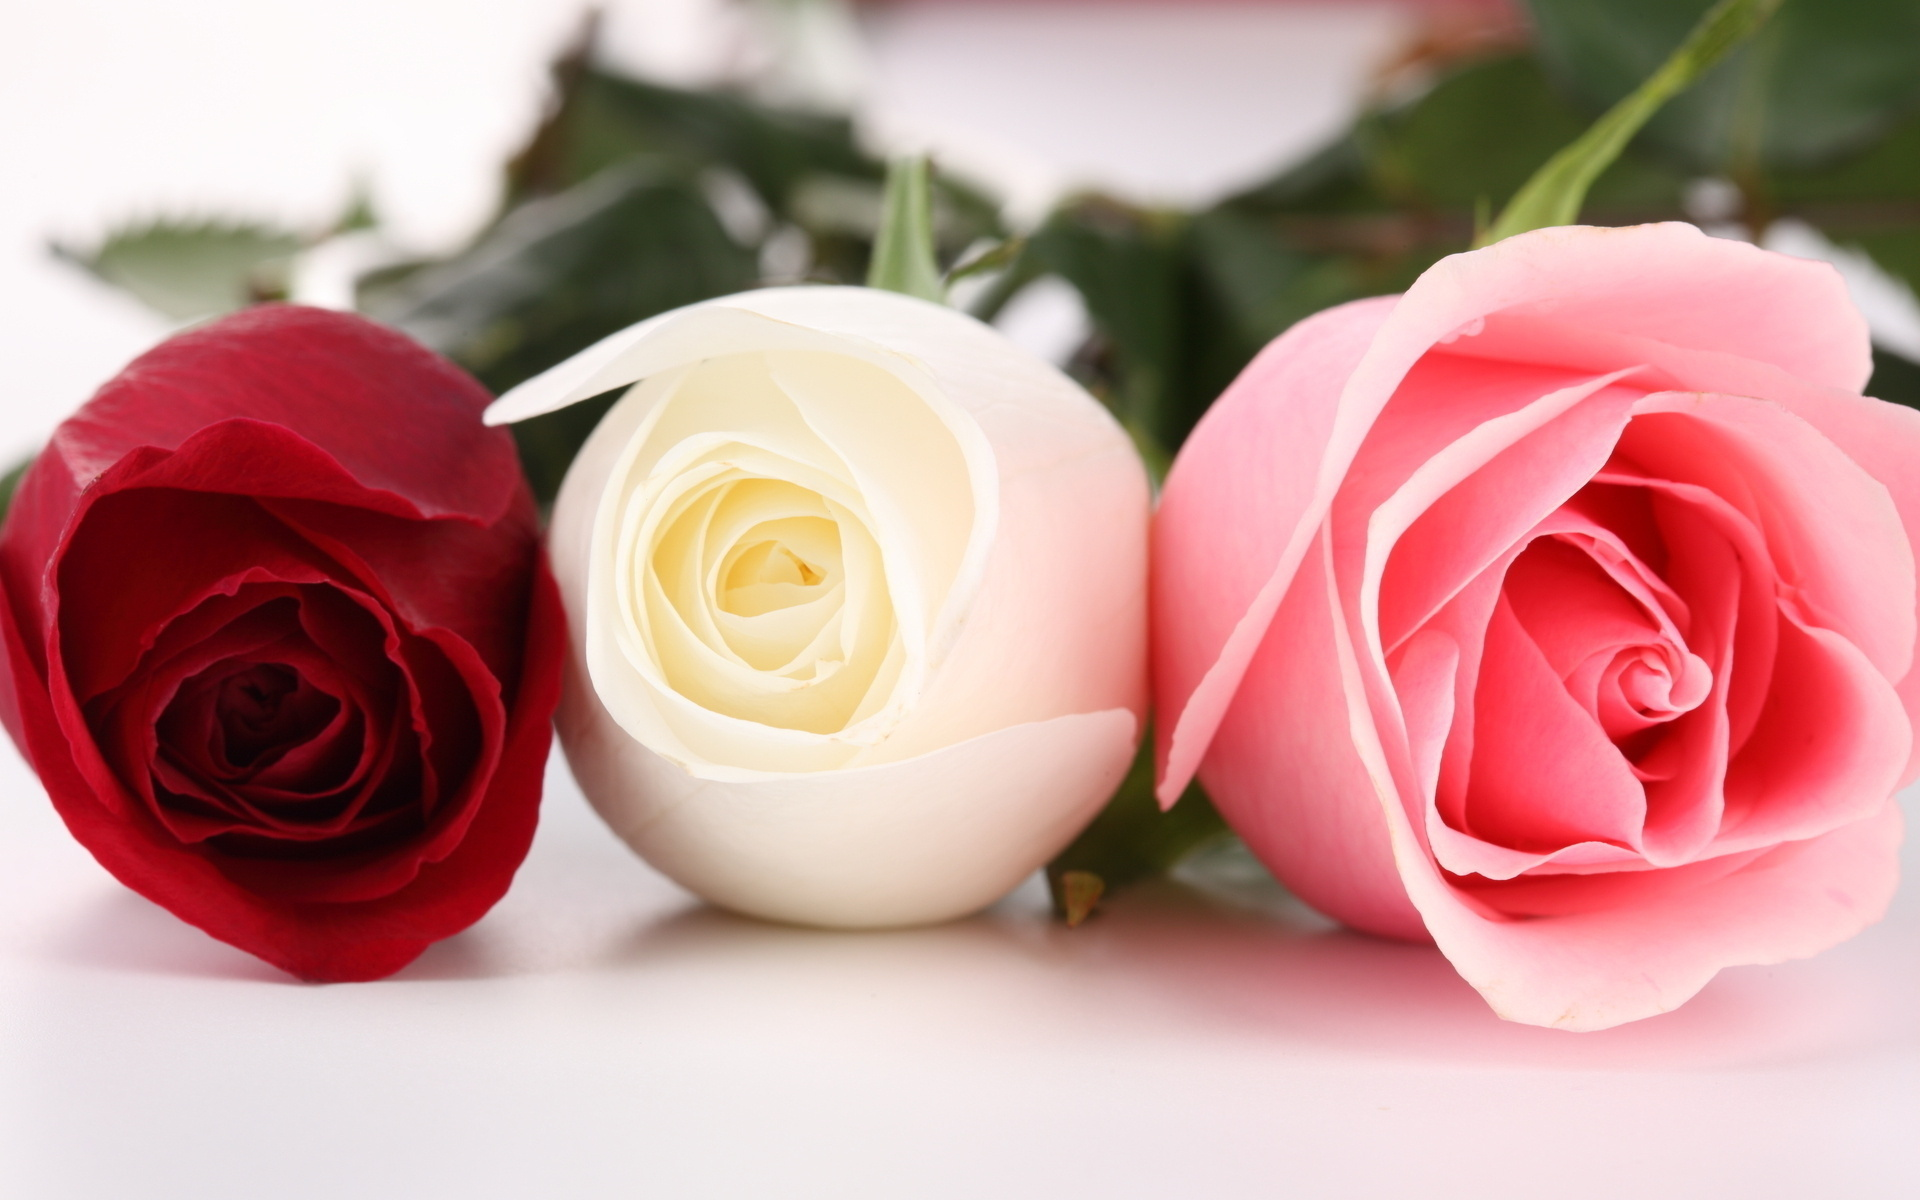 pictures of roses - HD1920×1200